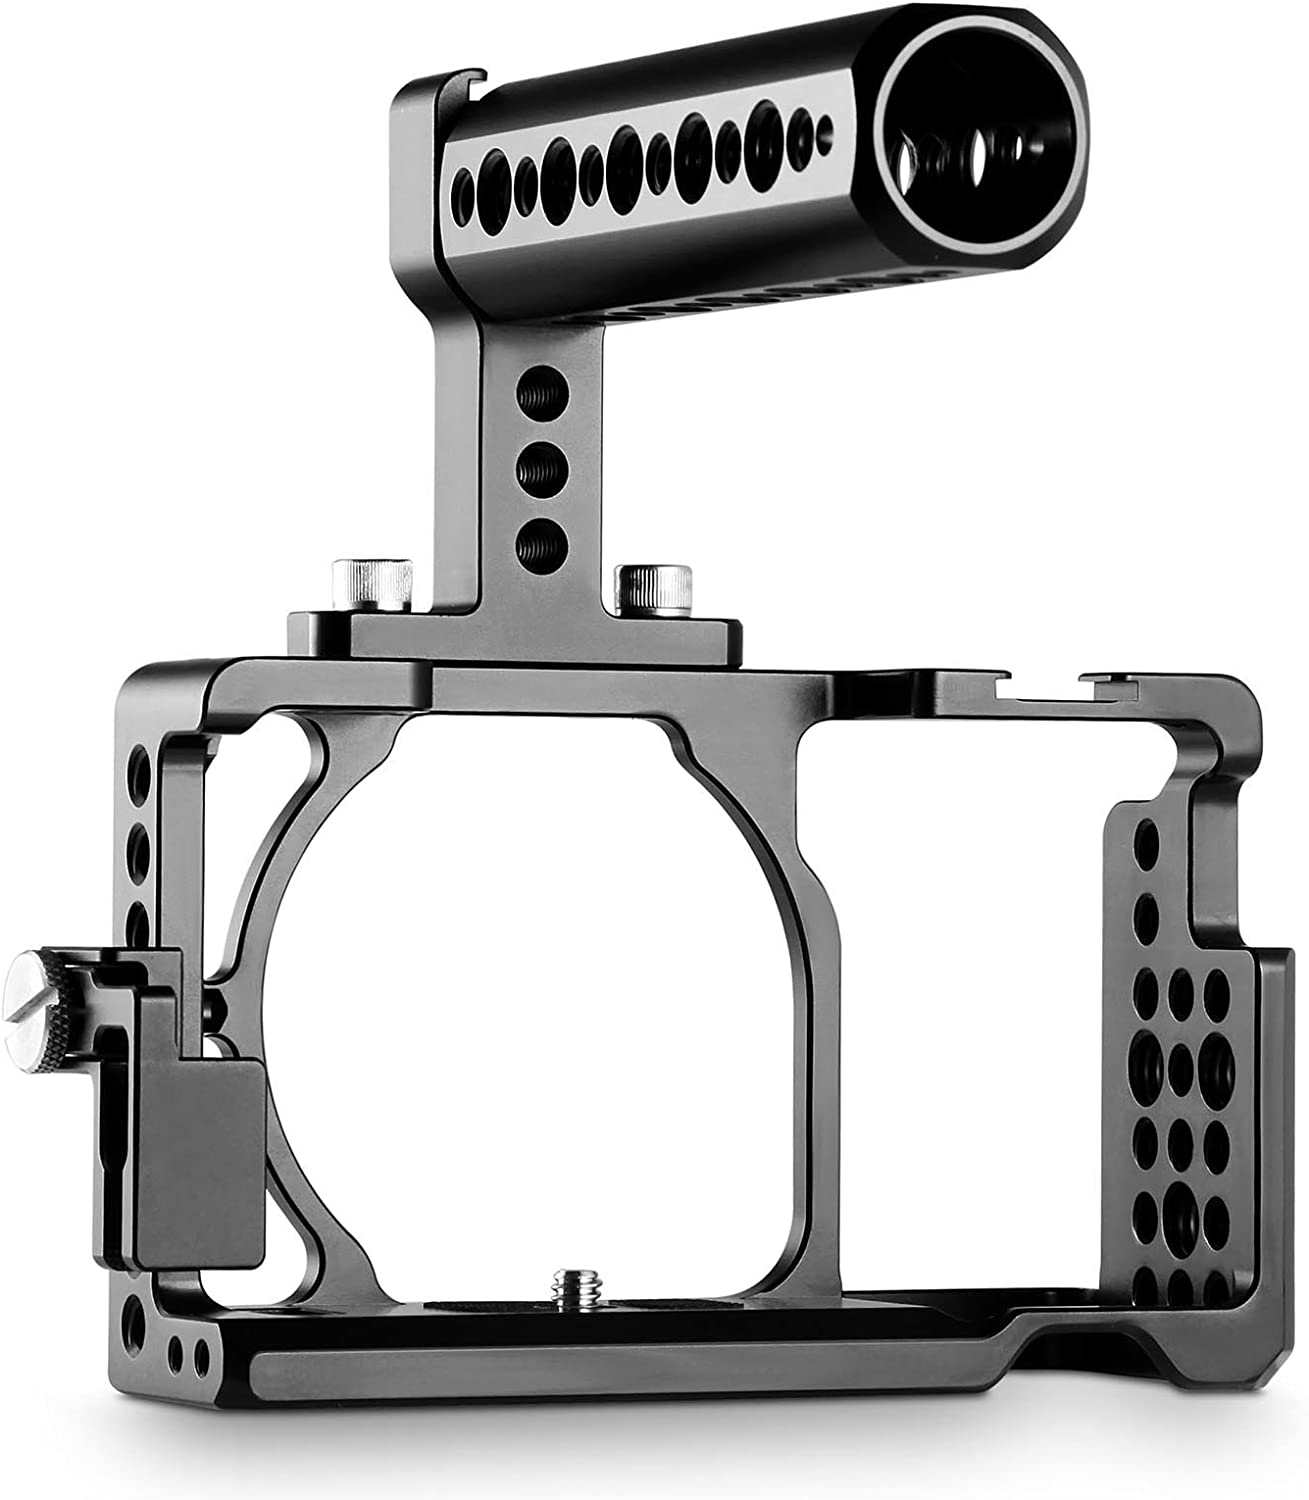 HDMI Clamp SMALLRIG Cage Kit for Sony A6000 A6300 NEX7 Camera with Cage Handle 1921